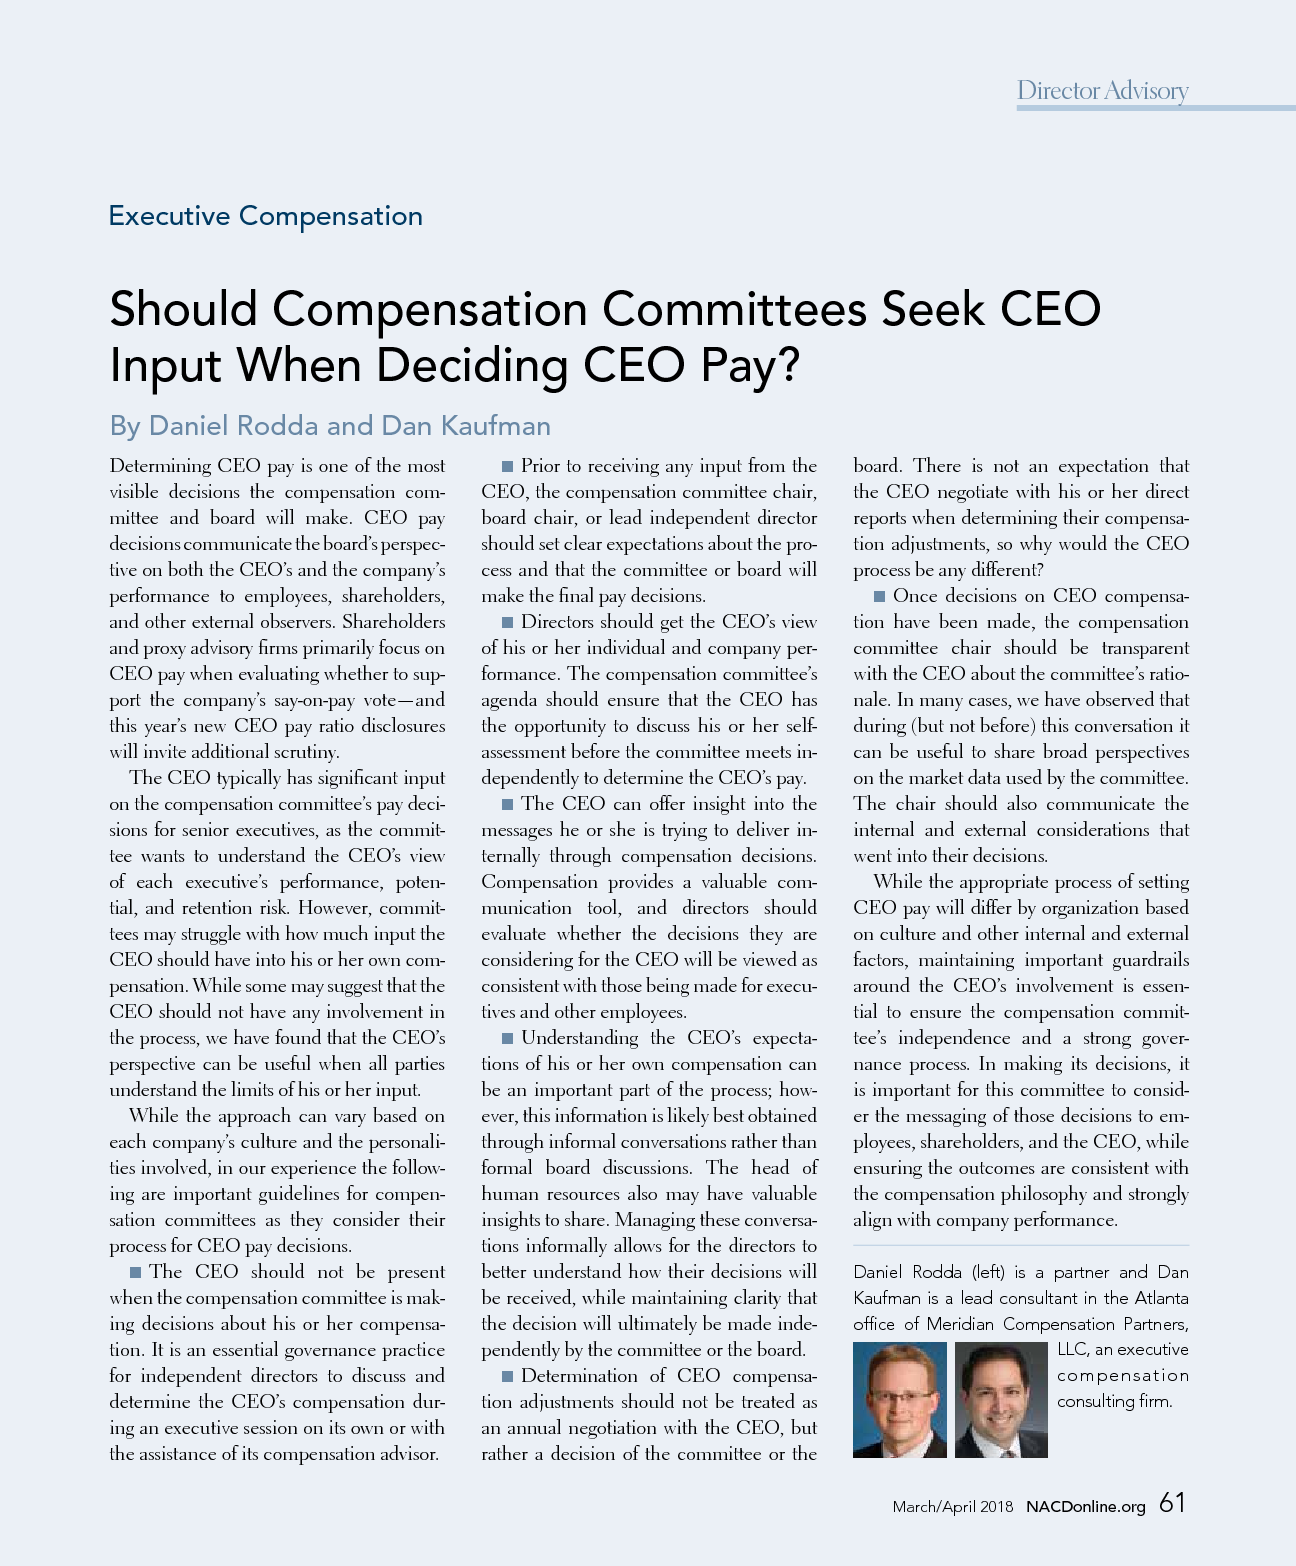 Should Compensation Committees Seek CEO Input When Deciding CEO Pay? (PDF)